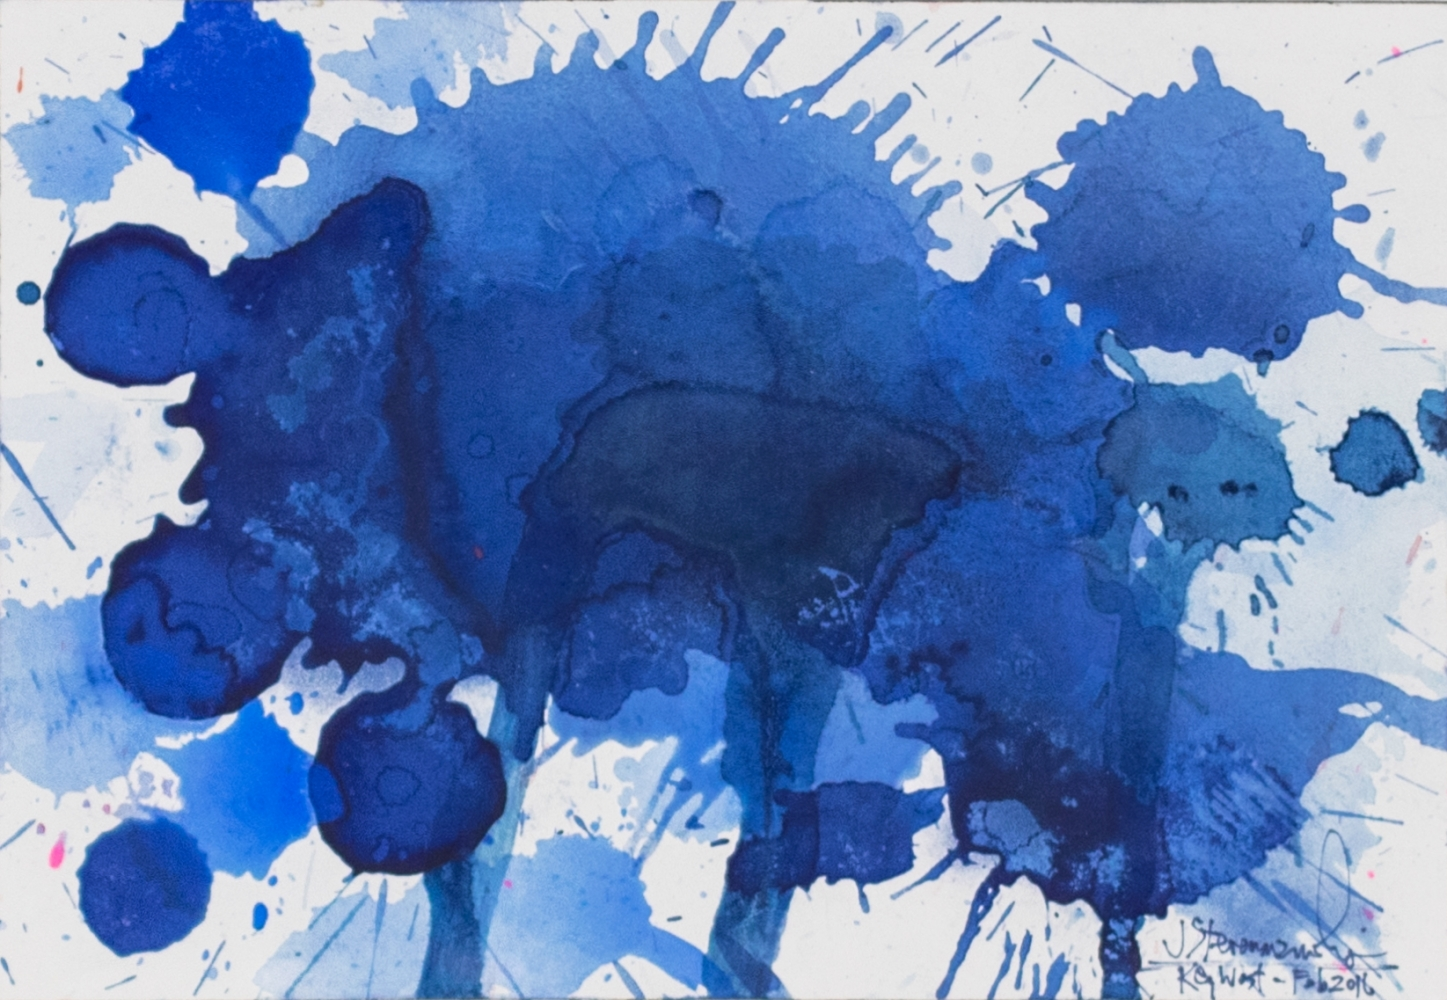 J. Steven Manolis, Splash (Key West), 07.10.08, Watercolor painting on Arches paper, 2016, 7 x 10 inches, Blue Abstract Art, Splash Art for sale at Manolis Projects Art Gallery, Miami, Fl